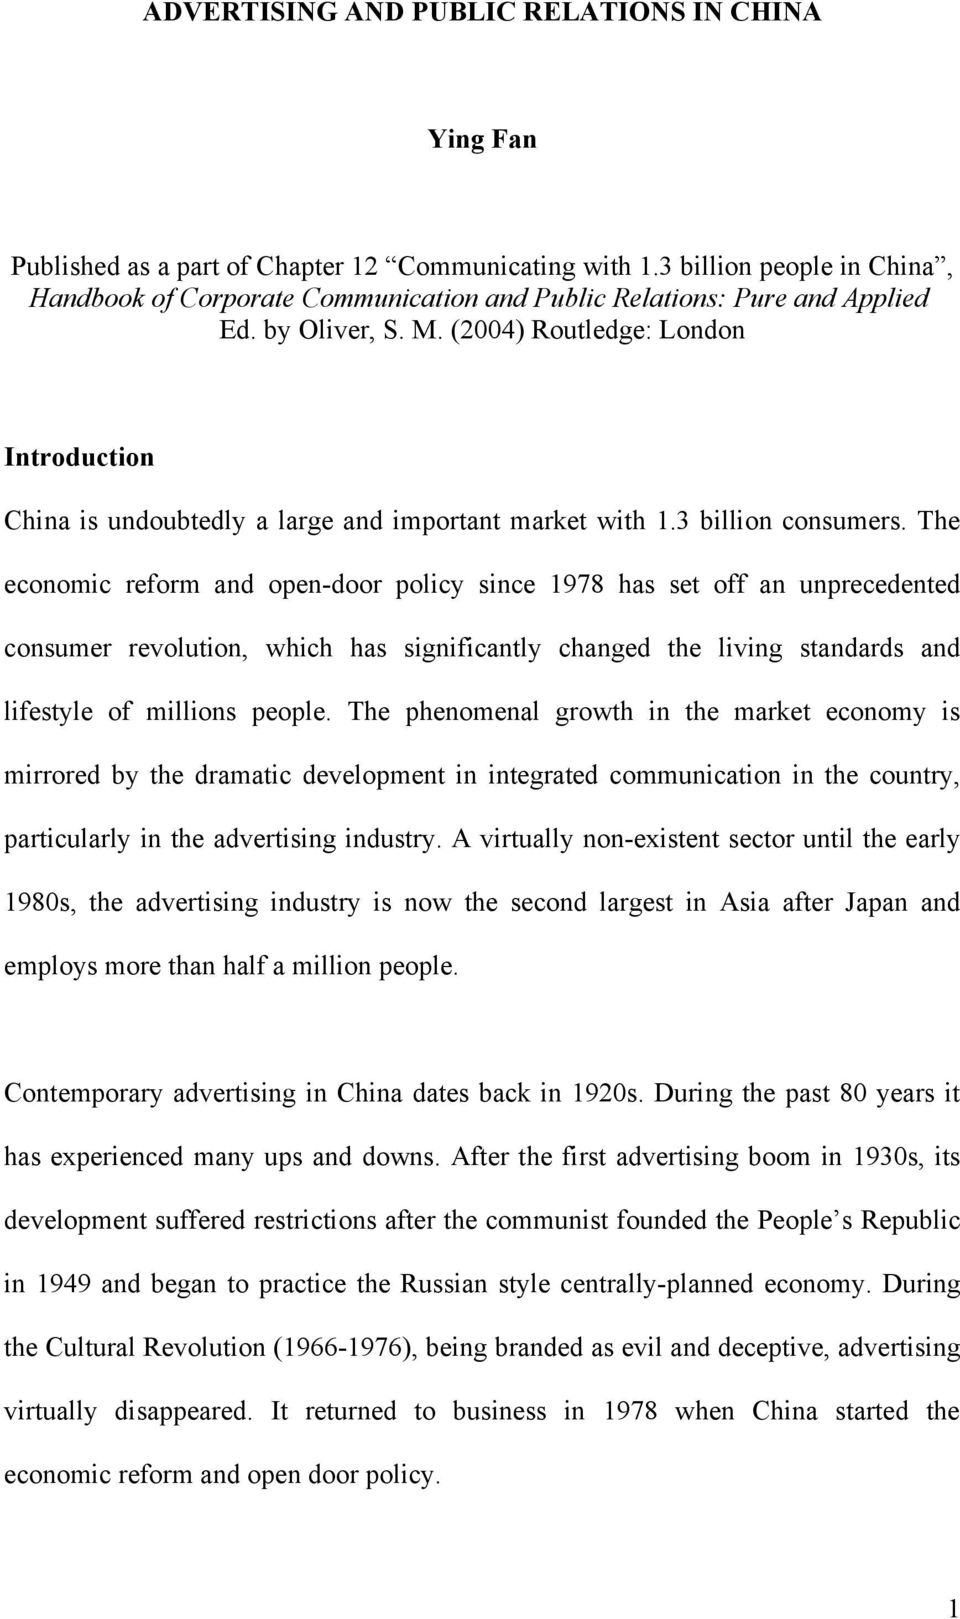 Advertising And Public Relations In China Ying Fan Pdf